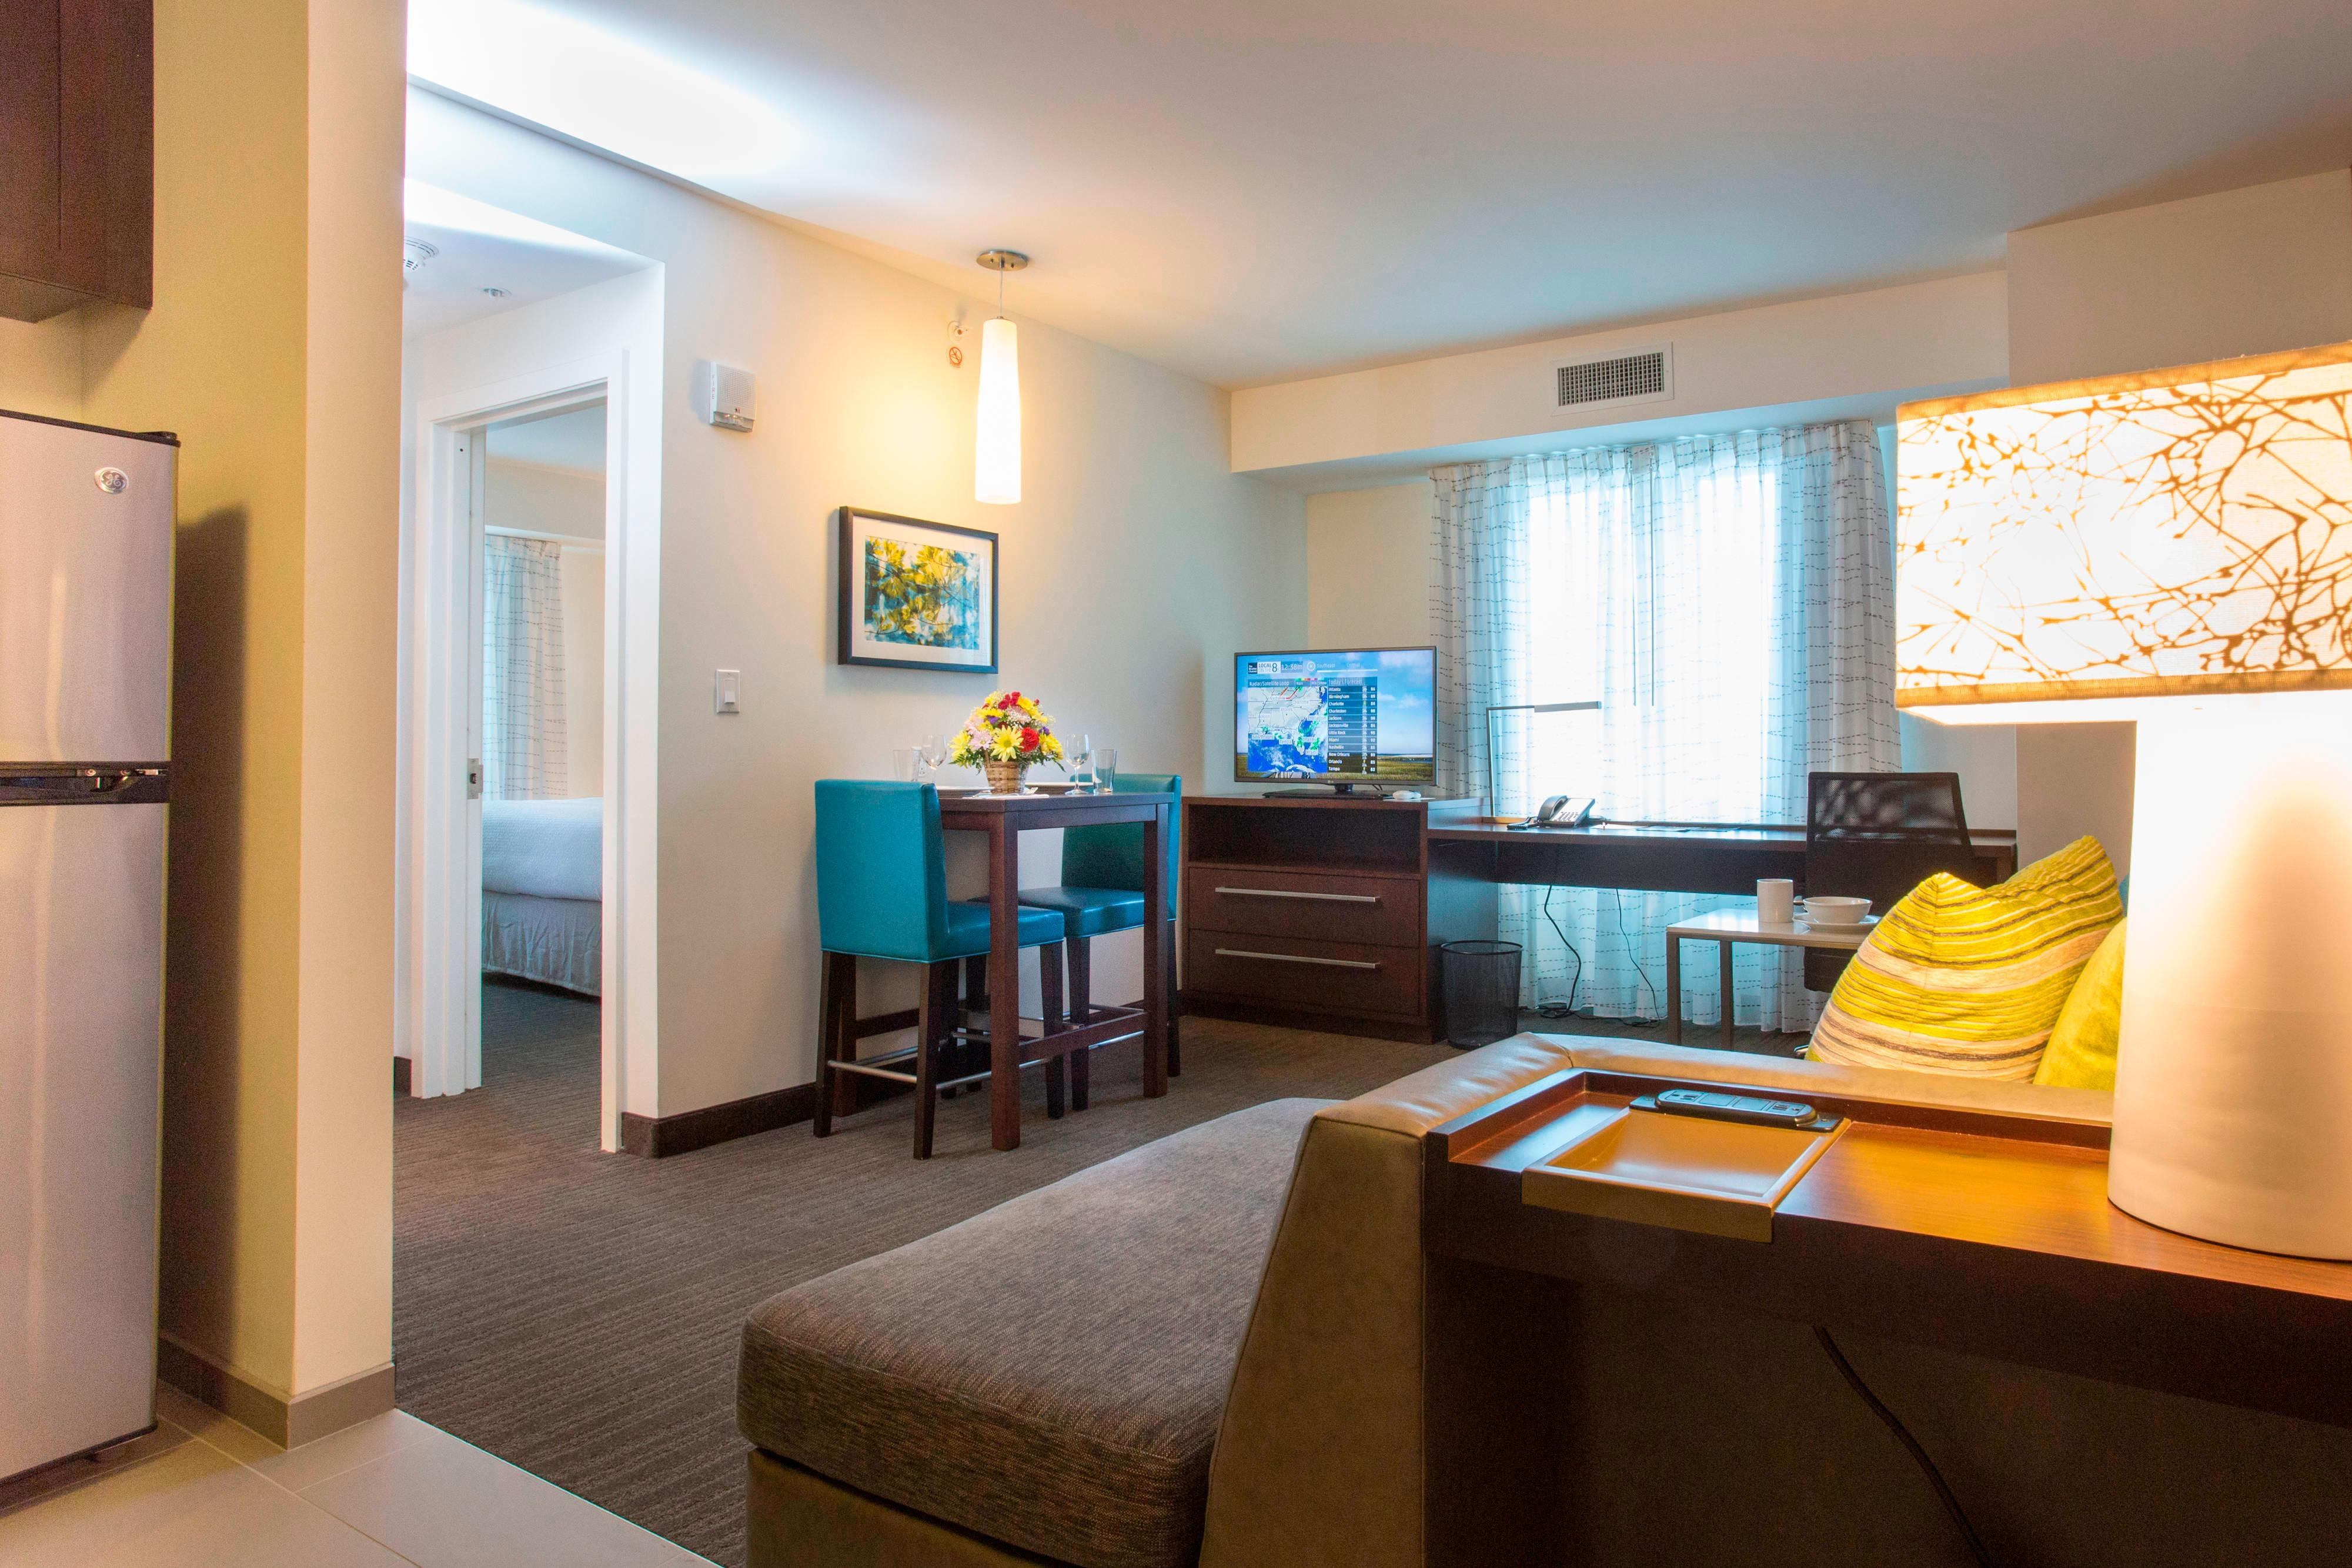 Hotel Rooms In Bronx New York